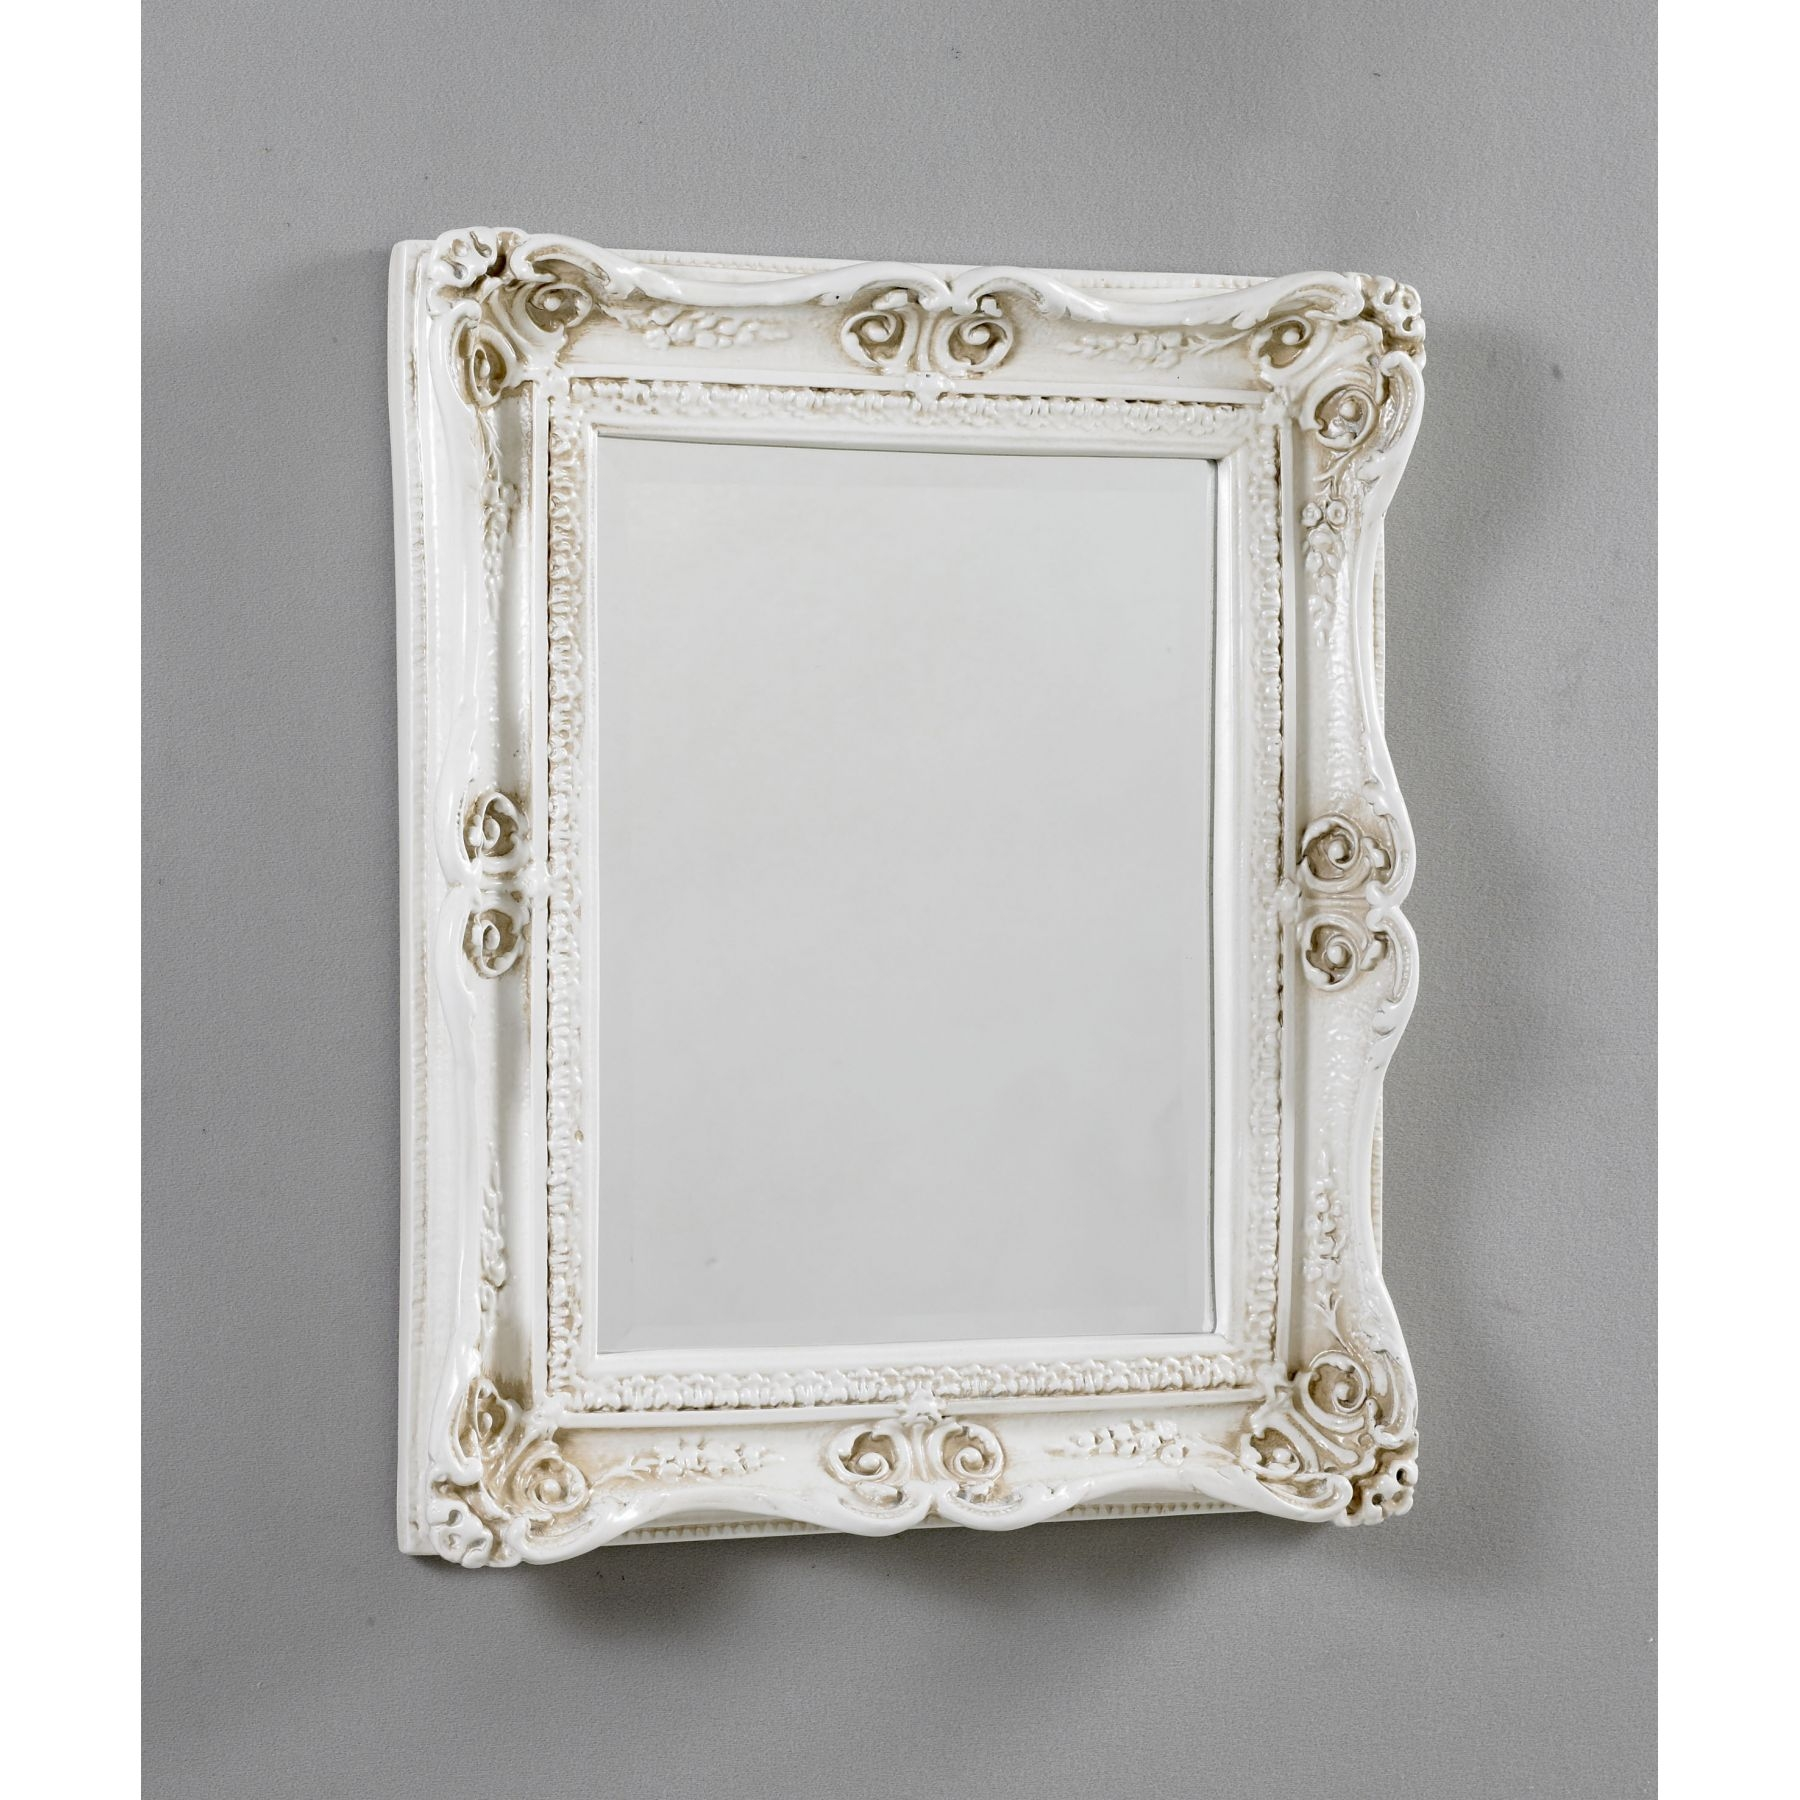 Home Decor Antique Wall Mirrorantique Mirrorwall Mirrordecor Inside Old Mirrors For Sale (View 9 of 15)